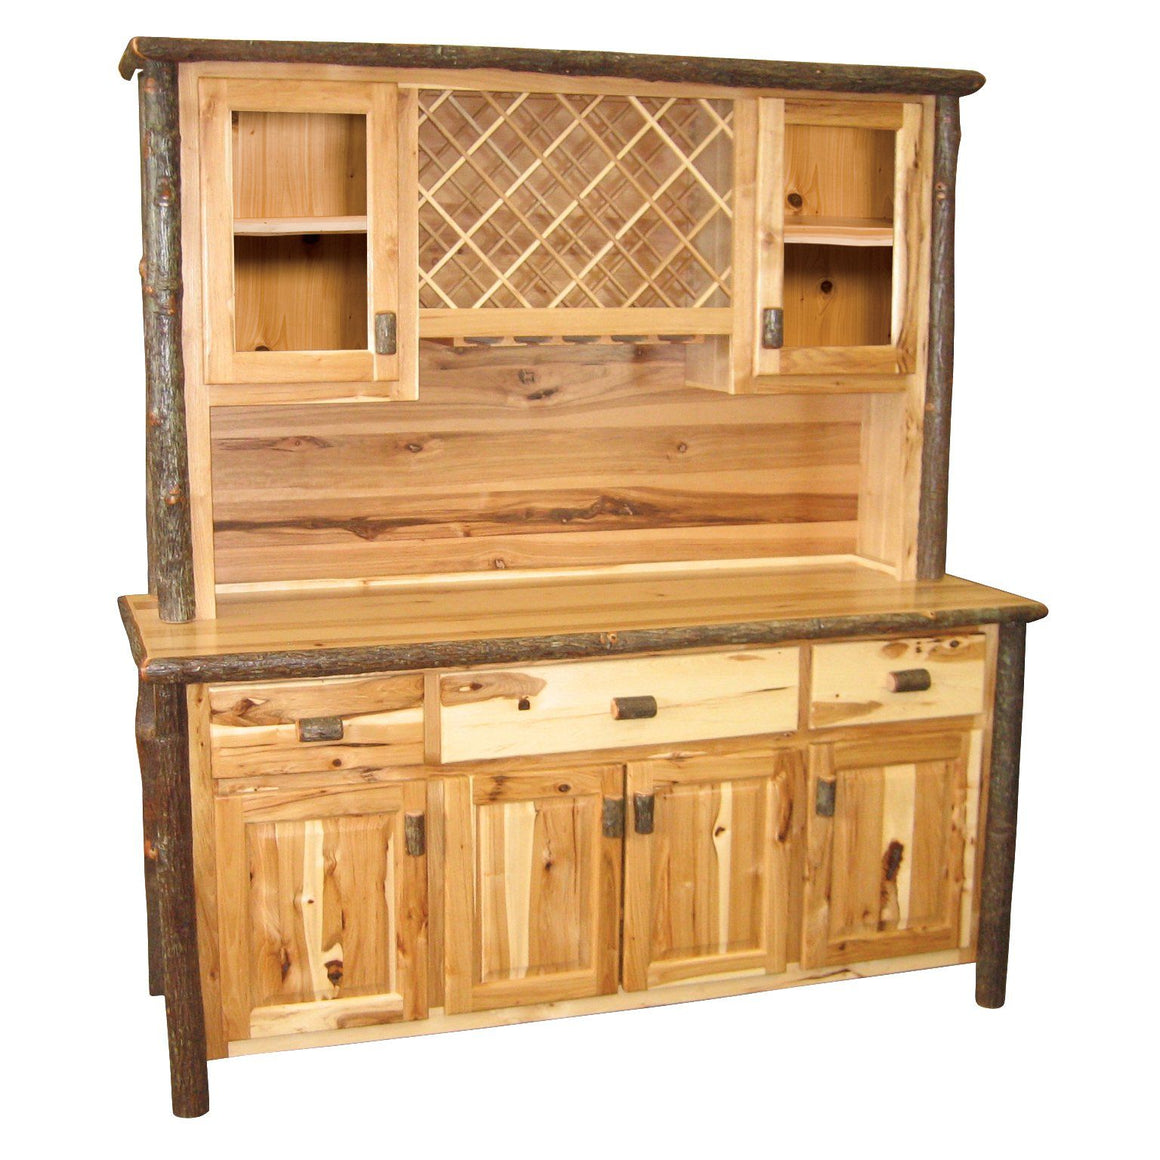 "Large Real Hickory Log Buffet & Hutch - with Wine Rack - 75"" - Rustic Deco Incorporated"